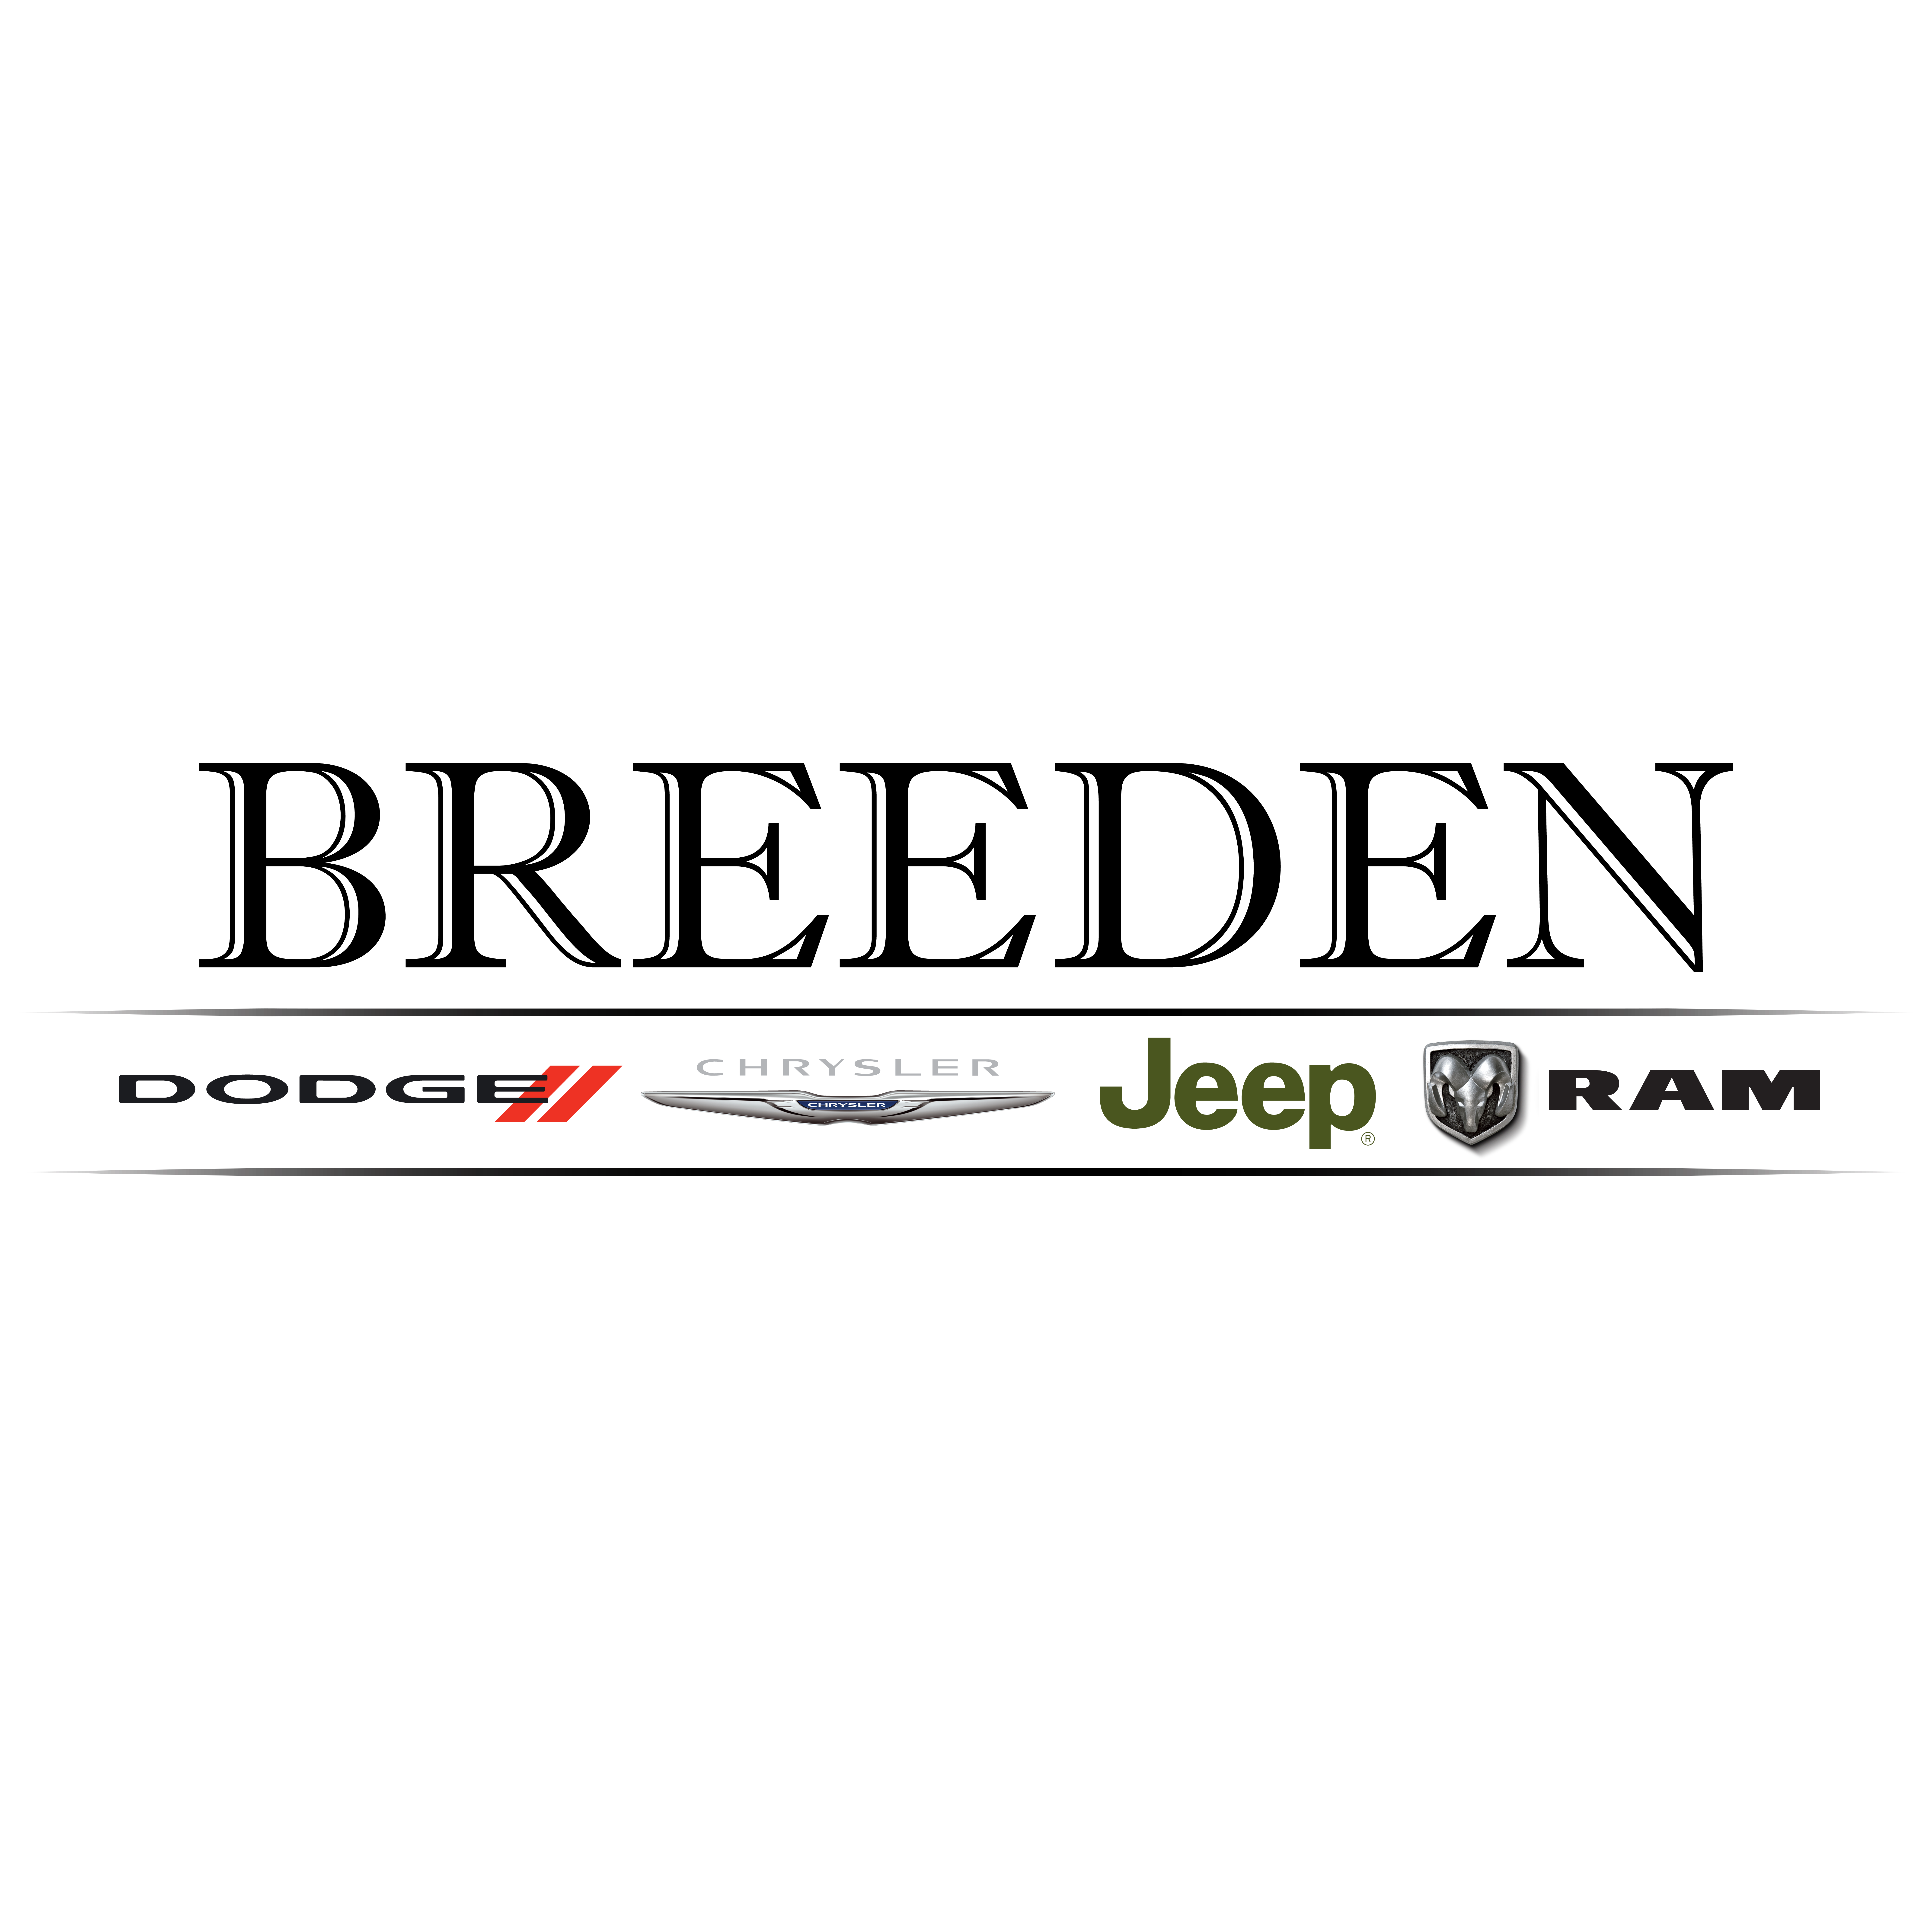 Breeden Dodge Chrysler Jeep RAM